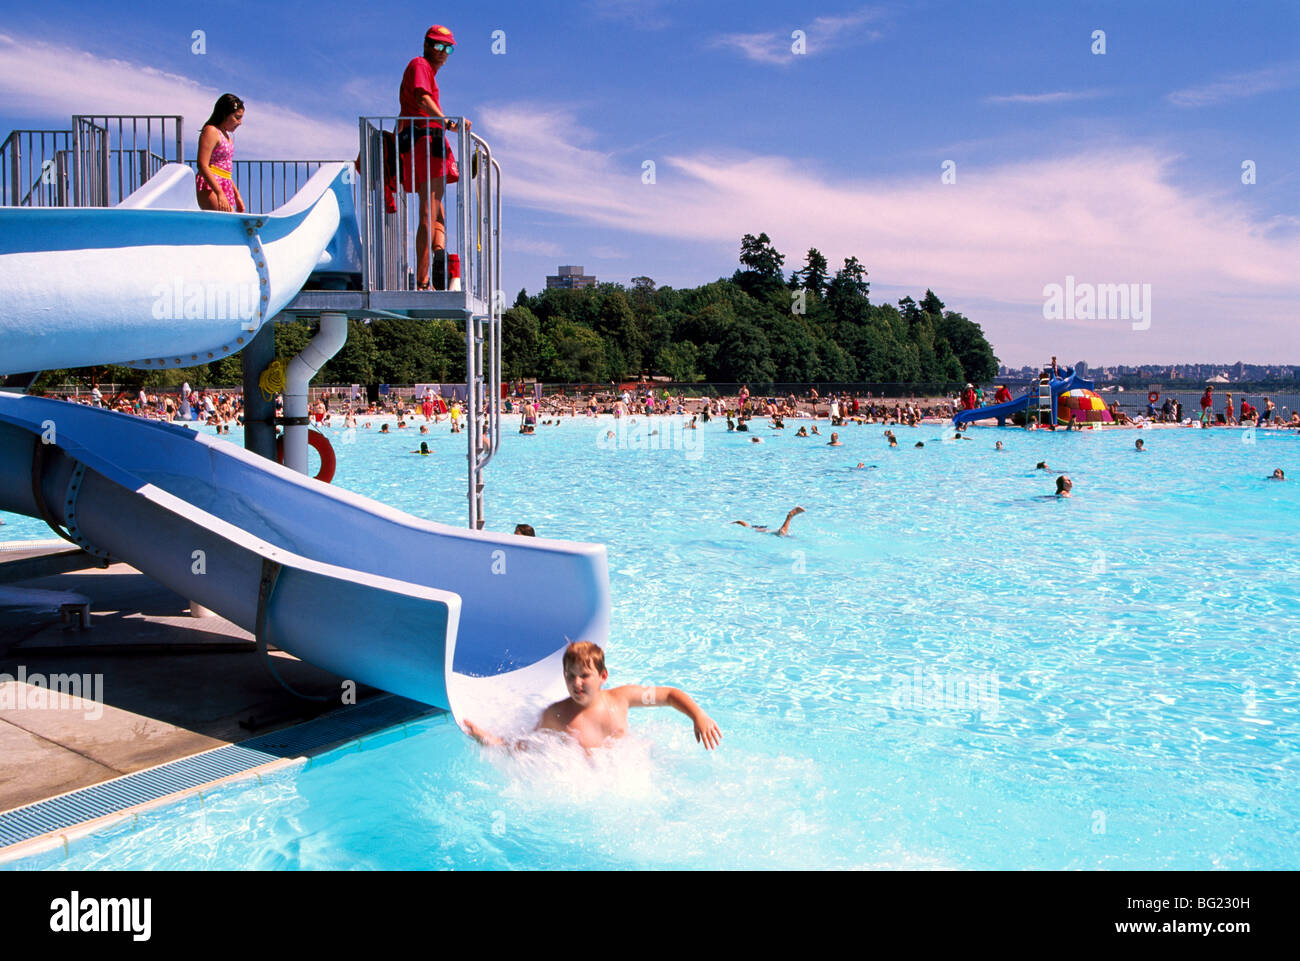 Children 39 s water slide at outdoor swimming pool stanley - Free public swimming pools near me ...